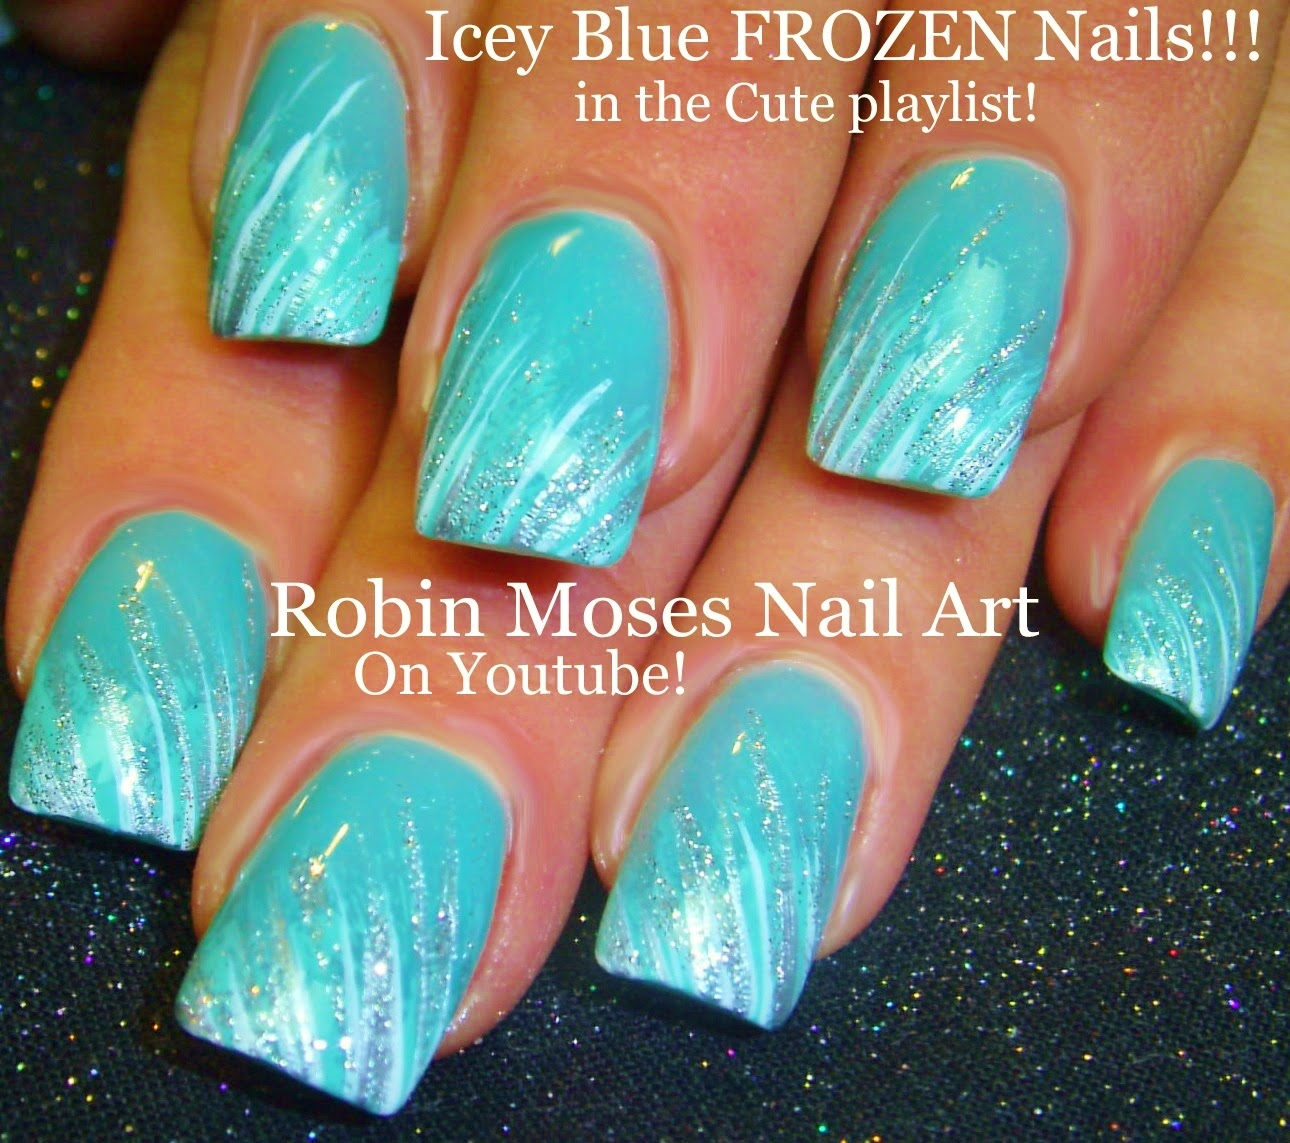 Nail Art By Robin Moses Frozen Nails Disney Nails Light Blue